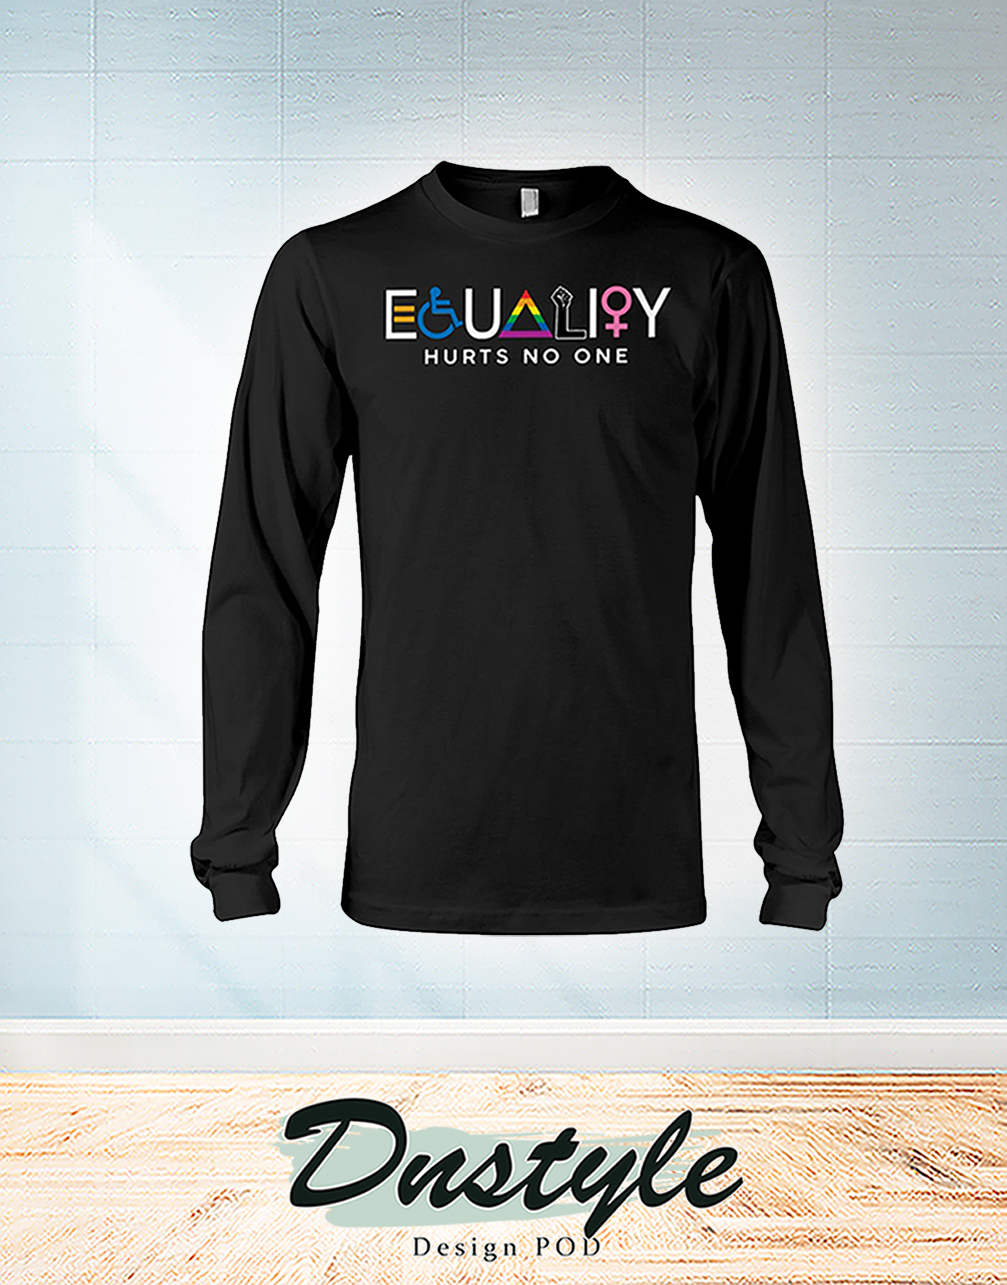 Equality hurts no one long sleeve